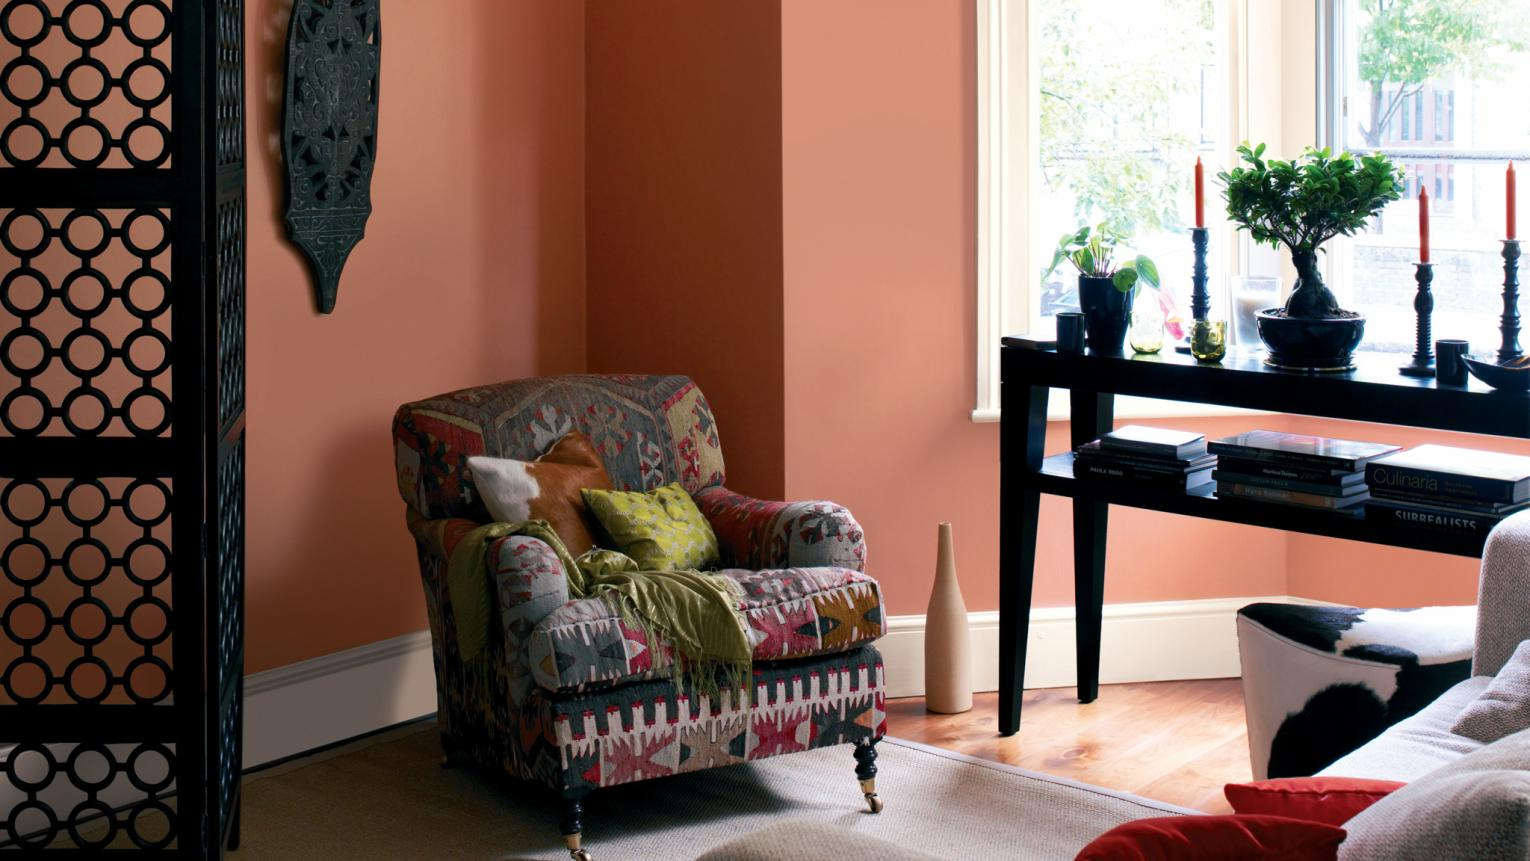 Paint your walls warm terracotta to create a welcoming glow.